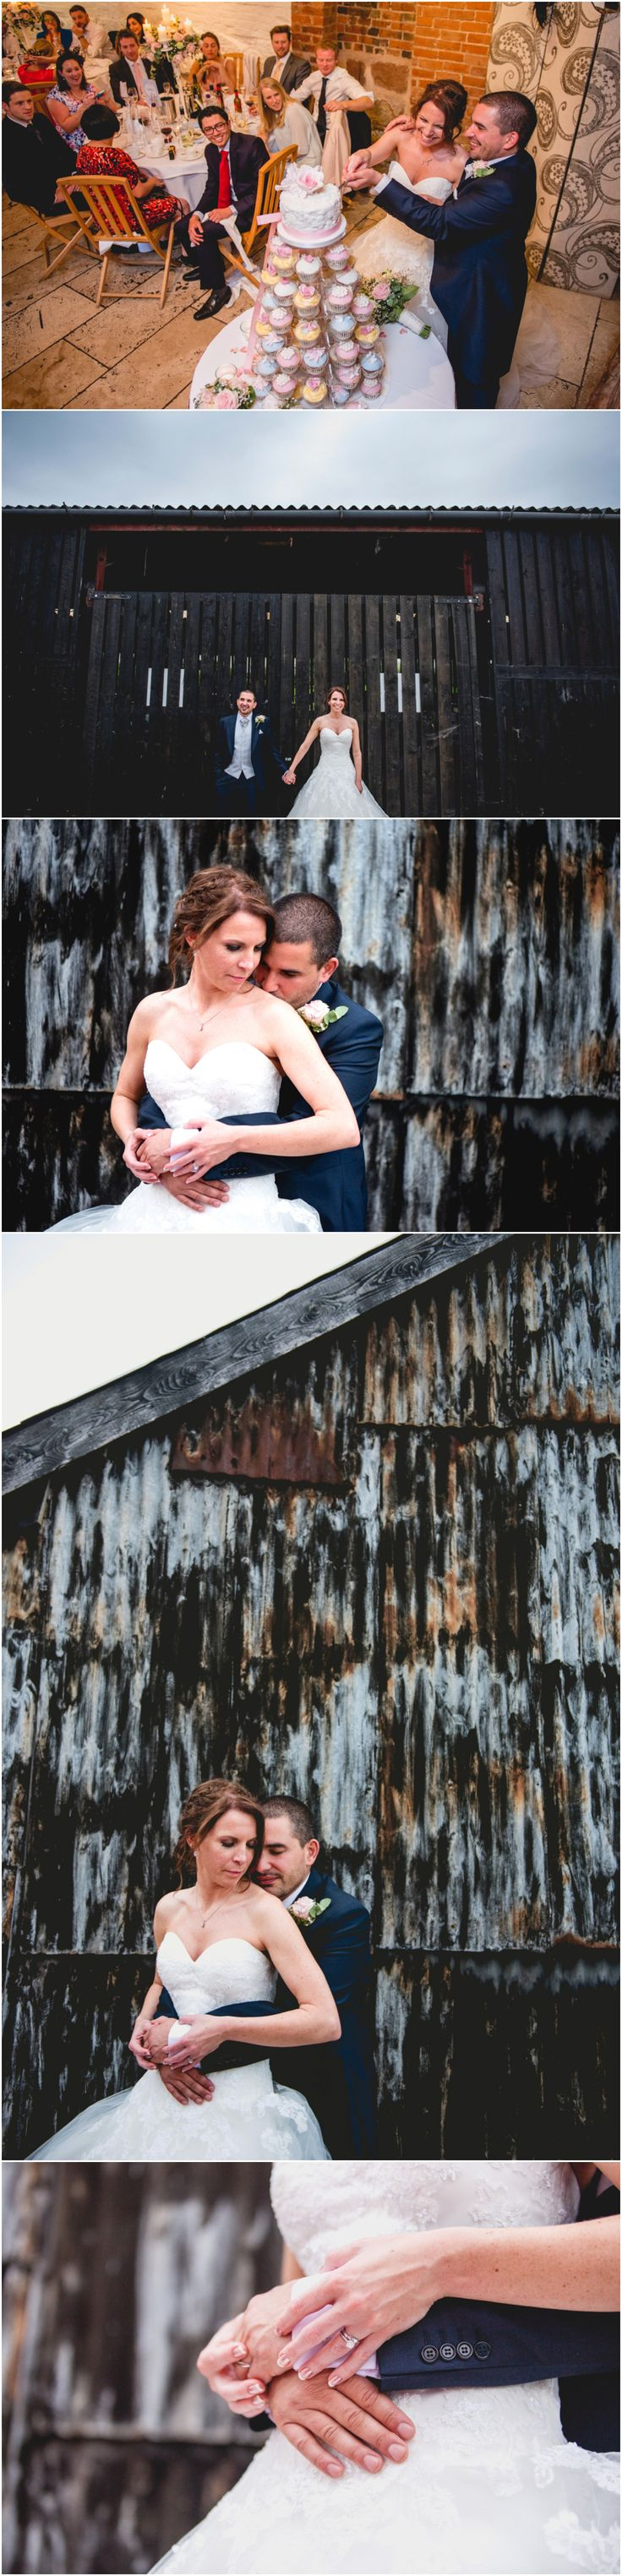 budget wedding photography west midlands%0A Laura and Neil u    s beautiful vintage  rustic wedding at Curradine Barns   Photos by Lisa Carpenter